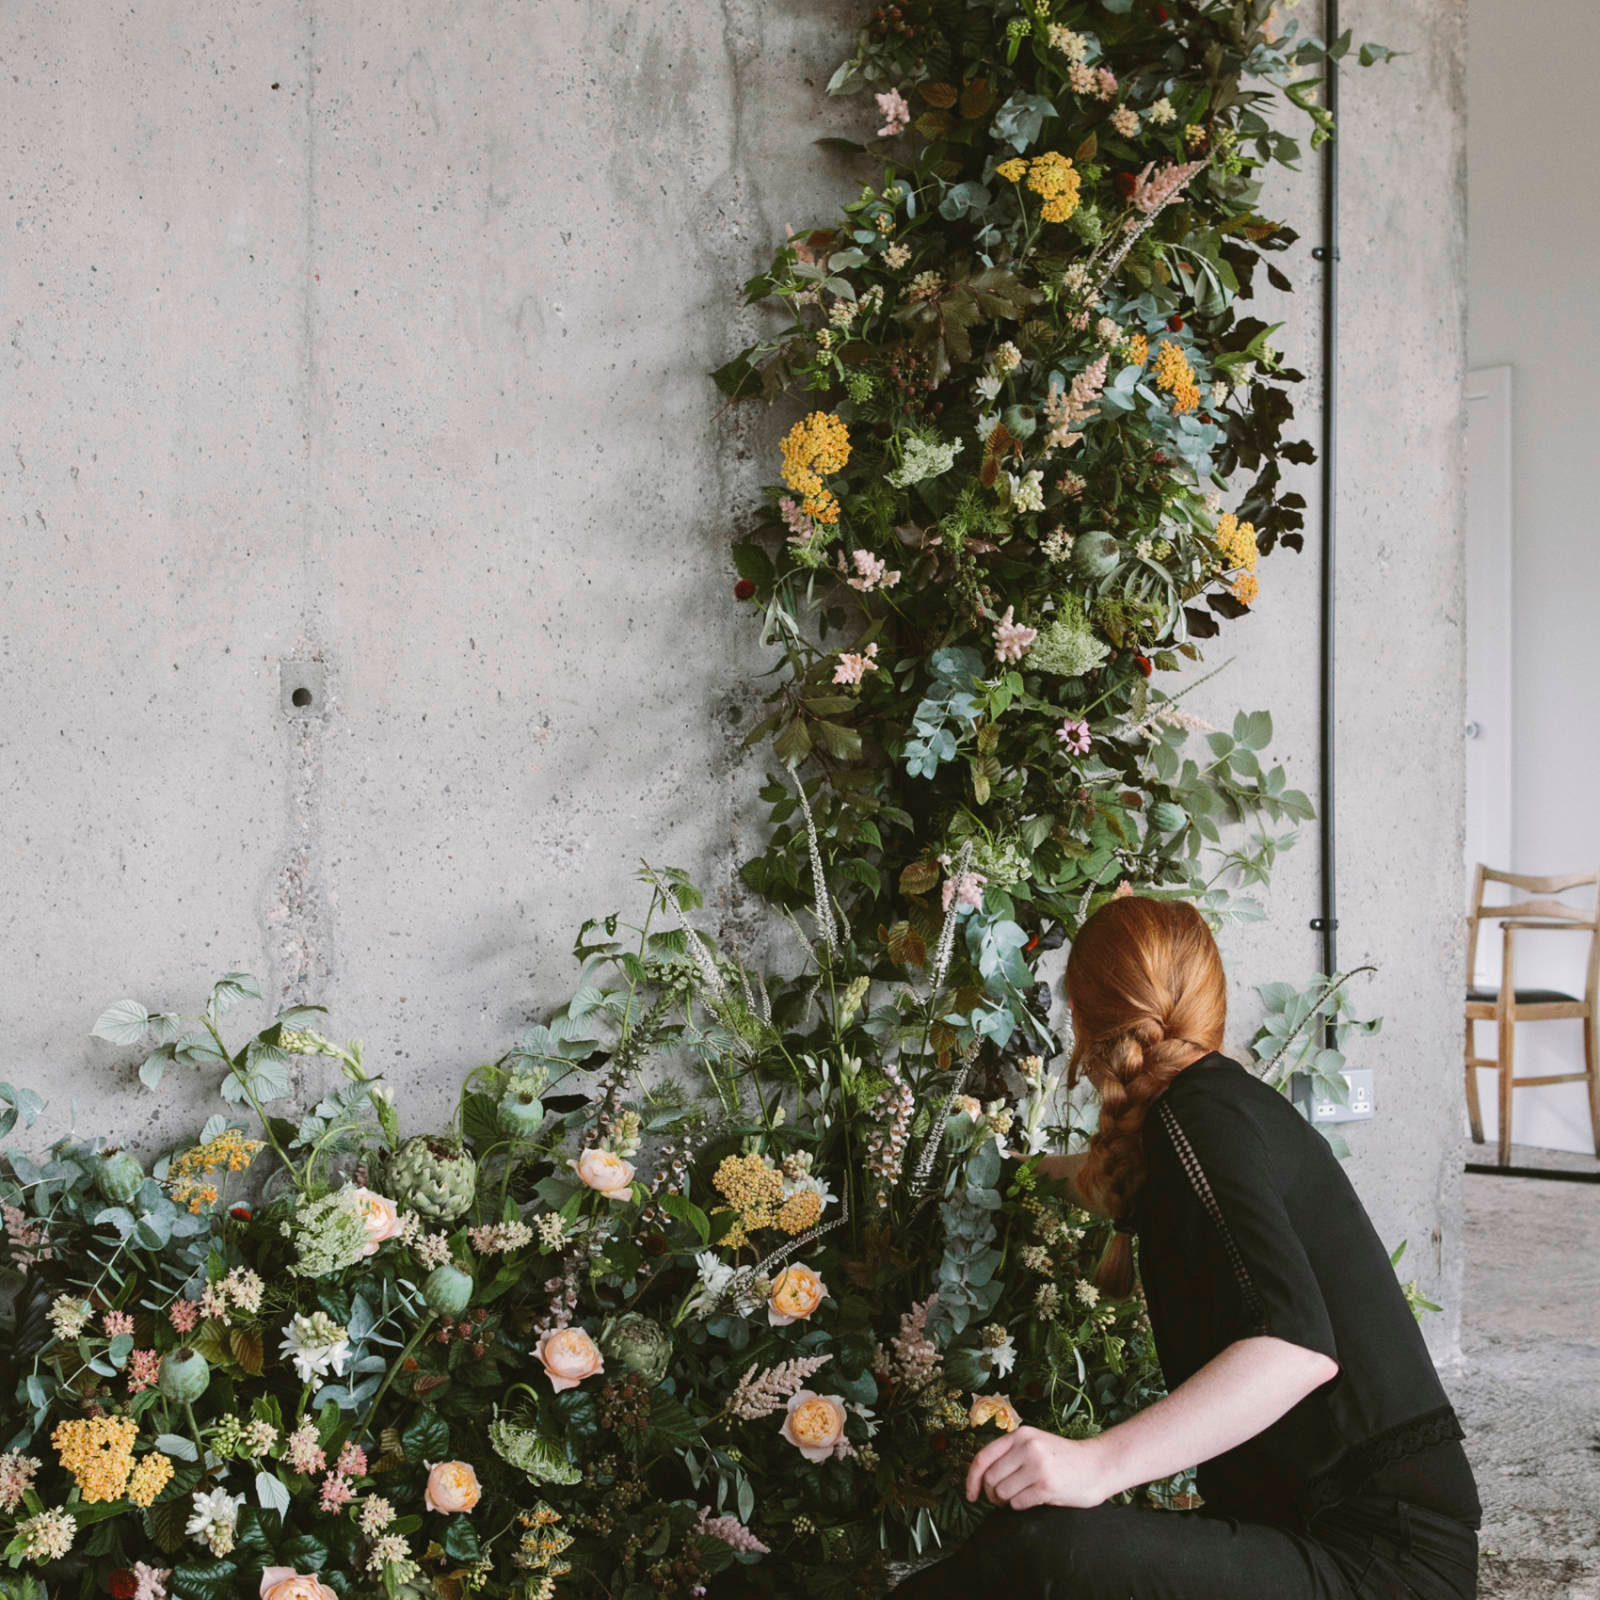 Image Nailed It Flower wall sculpture